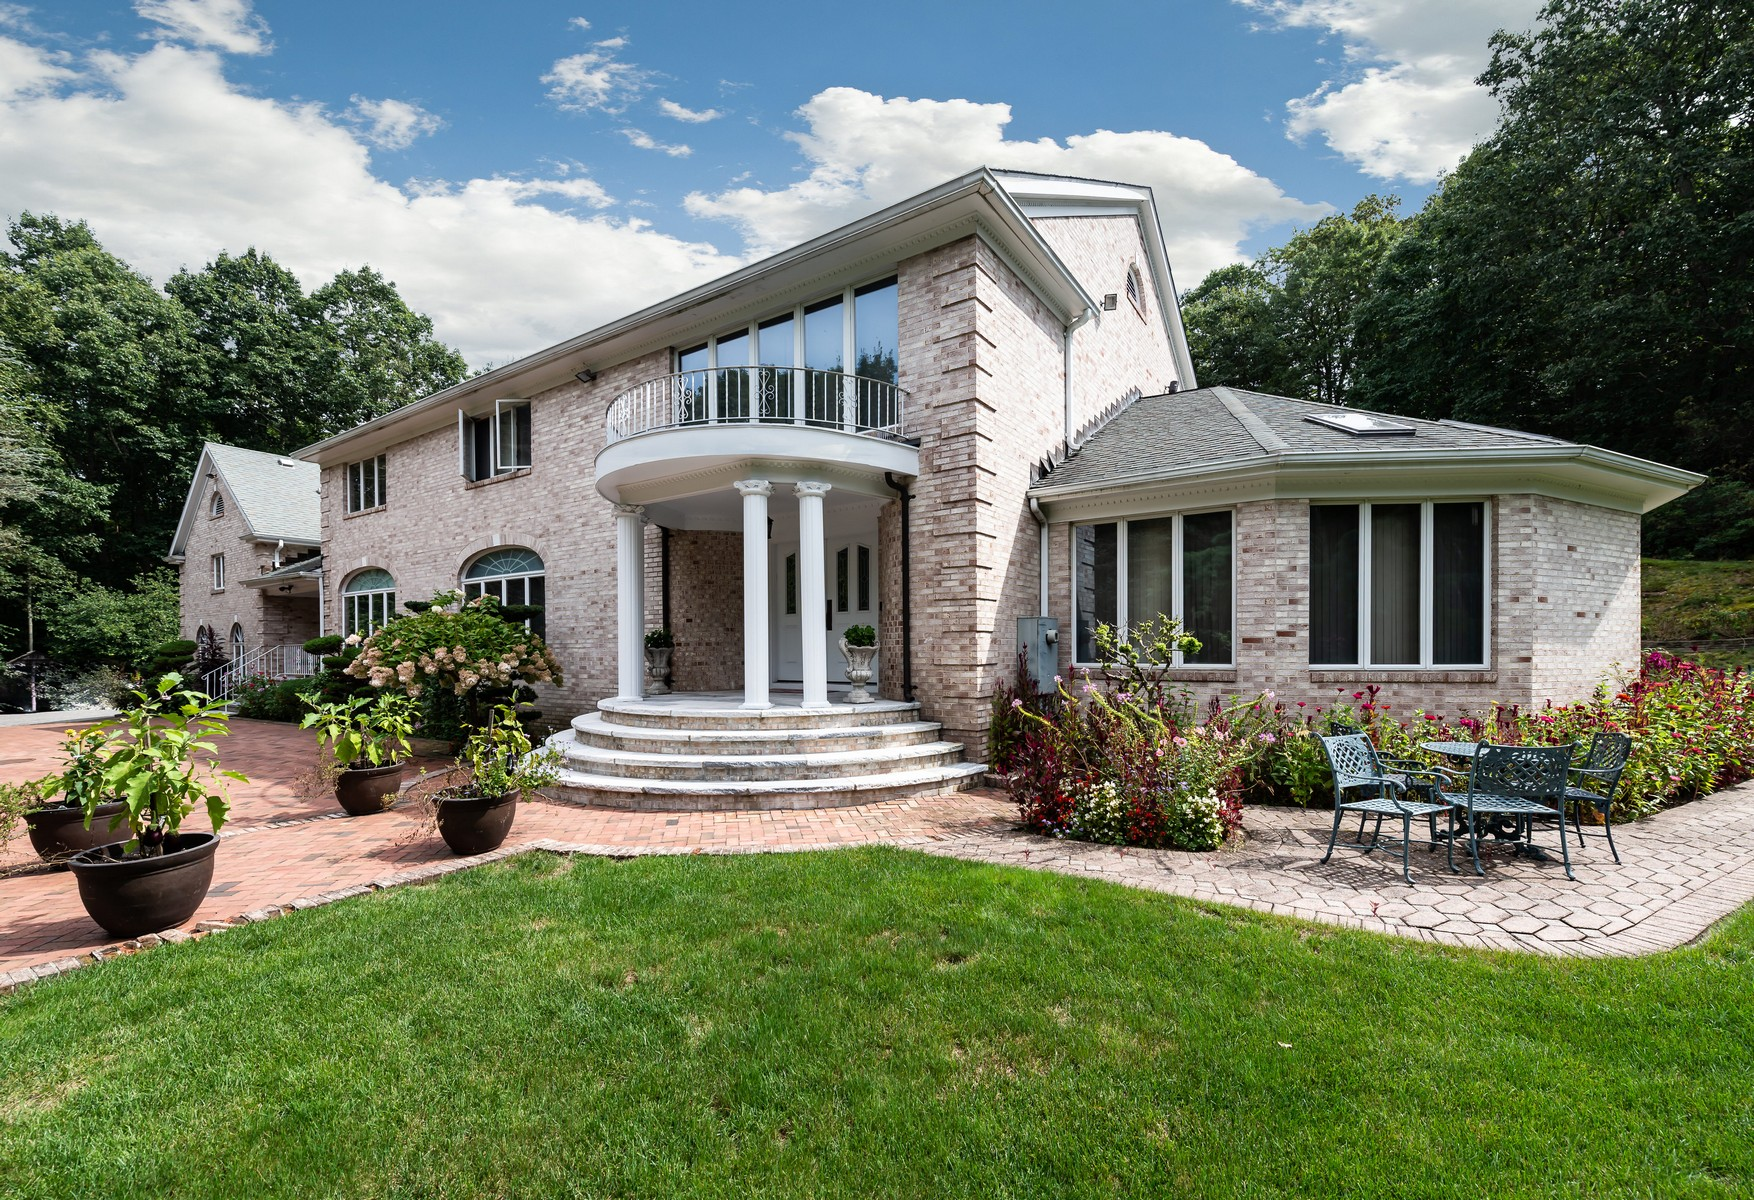 Single Family Homes for Sale at 1537 Laurel Hollow Rd Laurel Hollow, New York 11791 United States